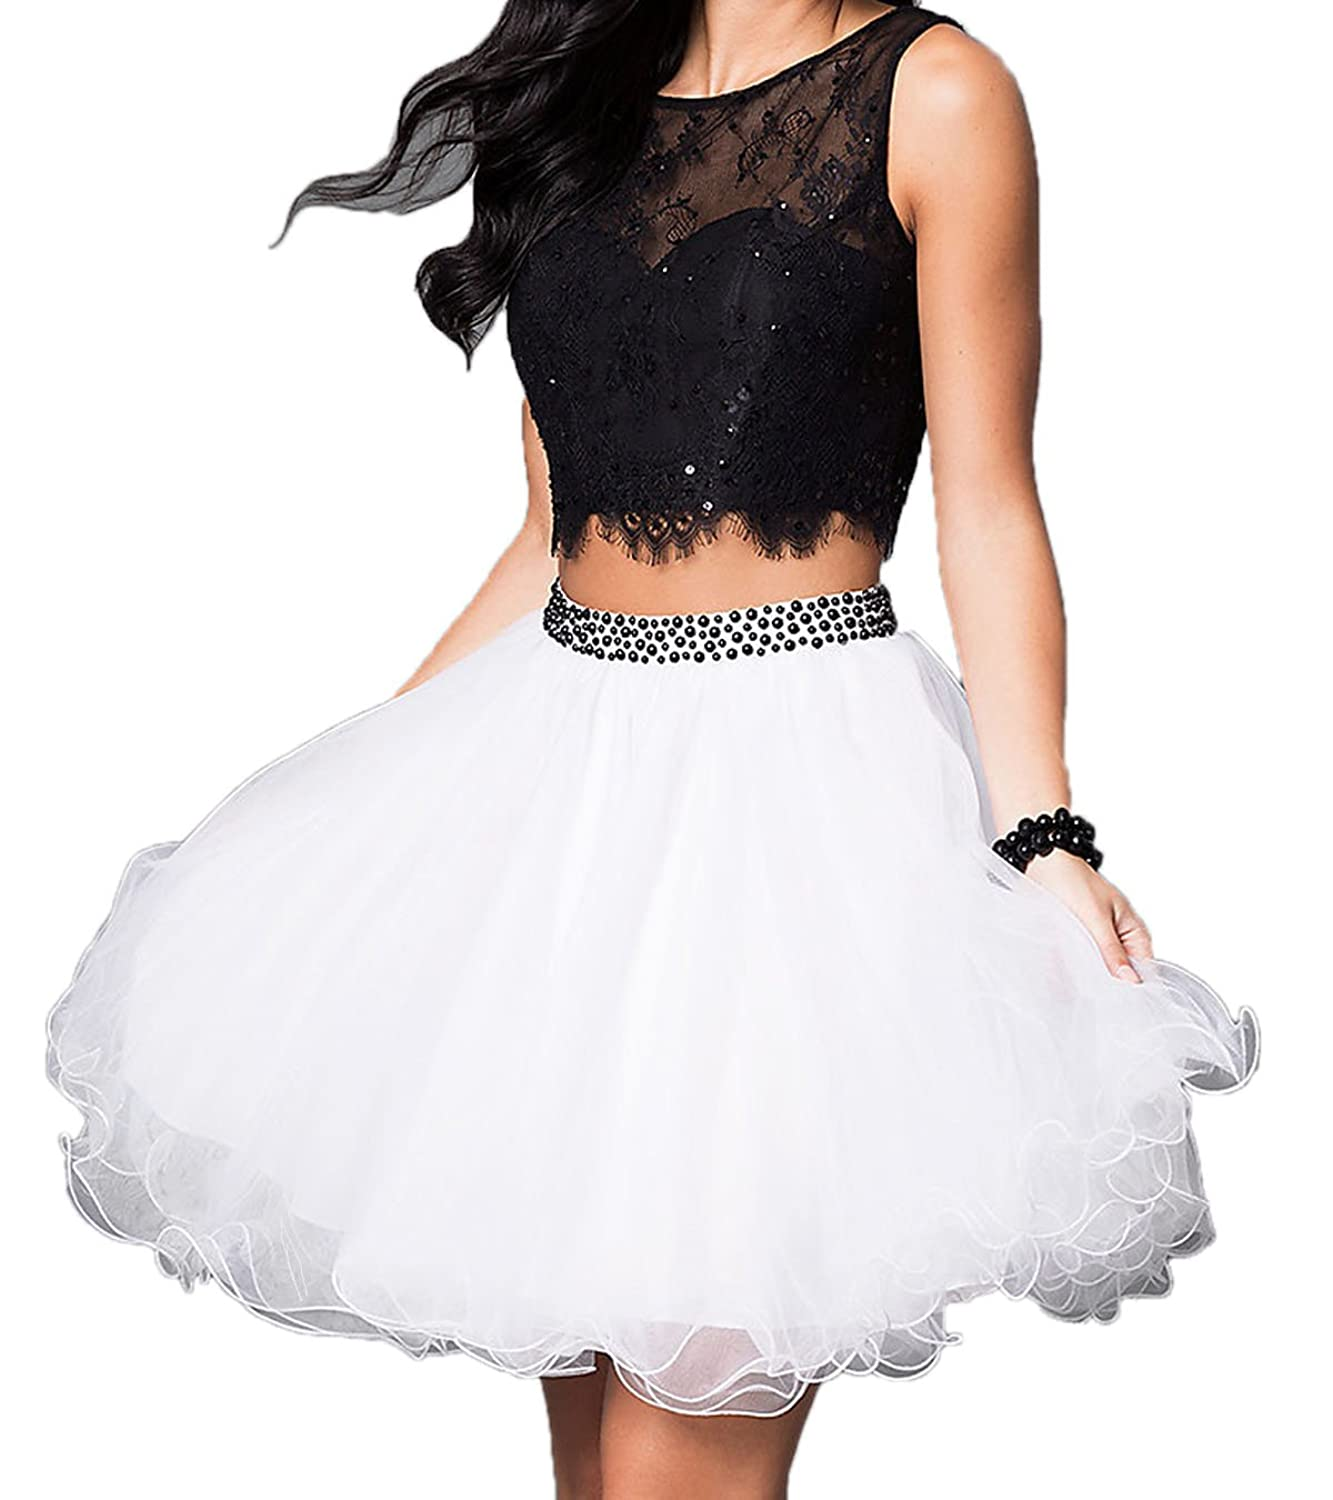 LM Two piece Lace Tulle A Line Mini Short Prom Homecoming Dresses